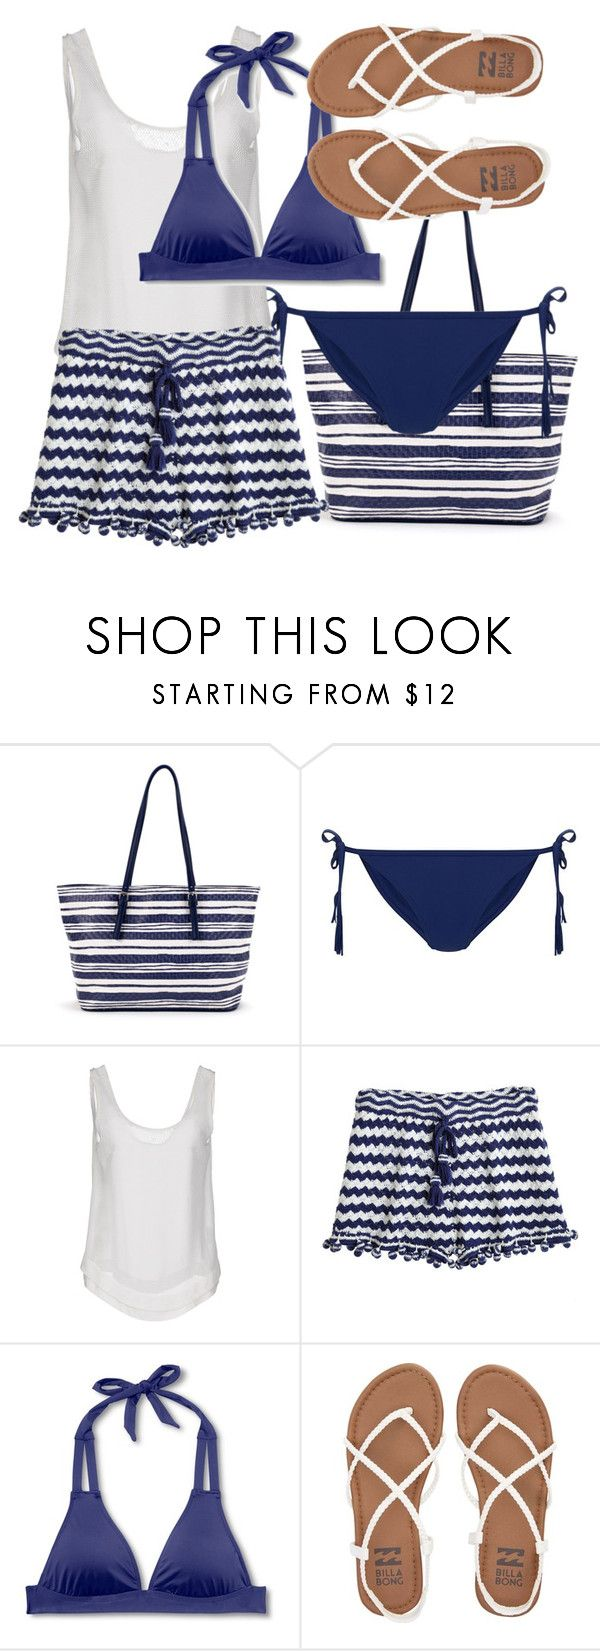 """""""Blue bikini"""" by juliehalloran ❤ liked on Polyvore featuring New Look, Le Ragazze Di St. Barth, Calypso St. Barth, Mossimo and Billabong"""